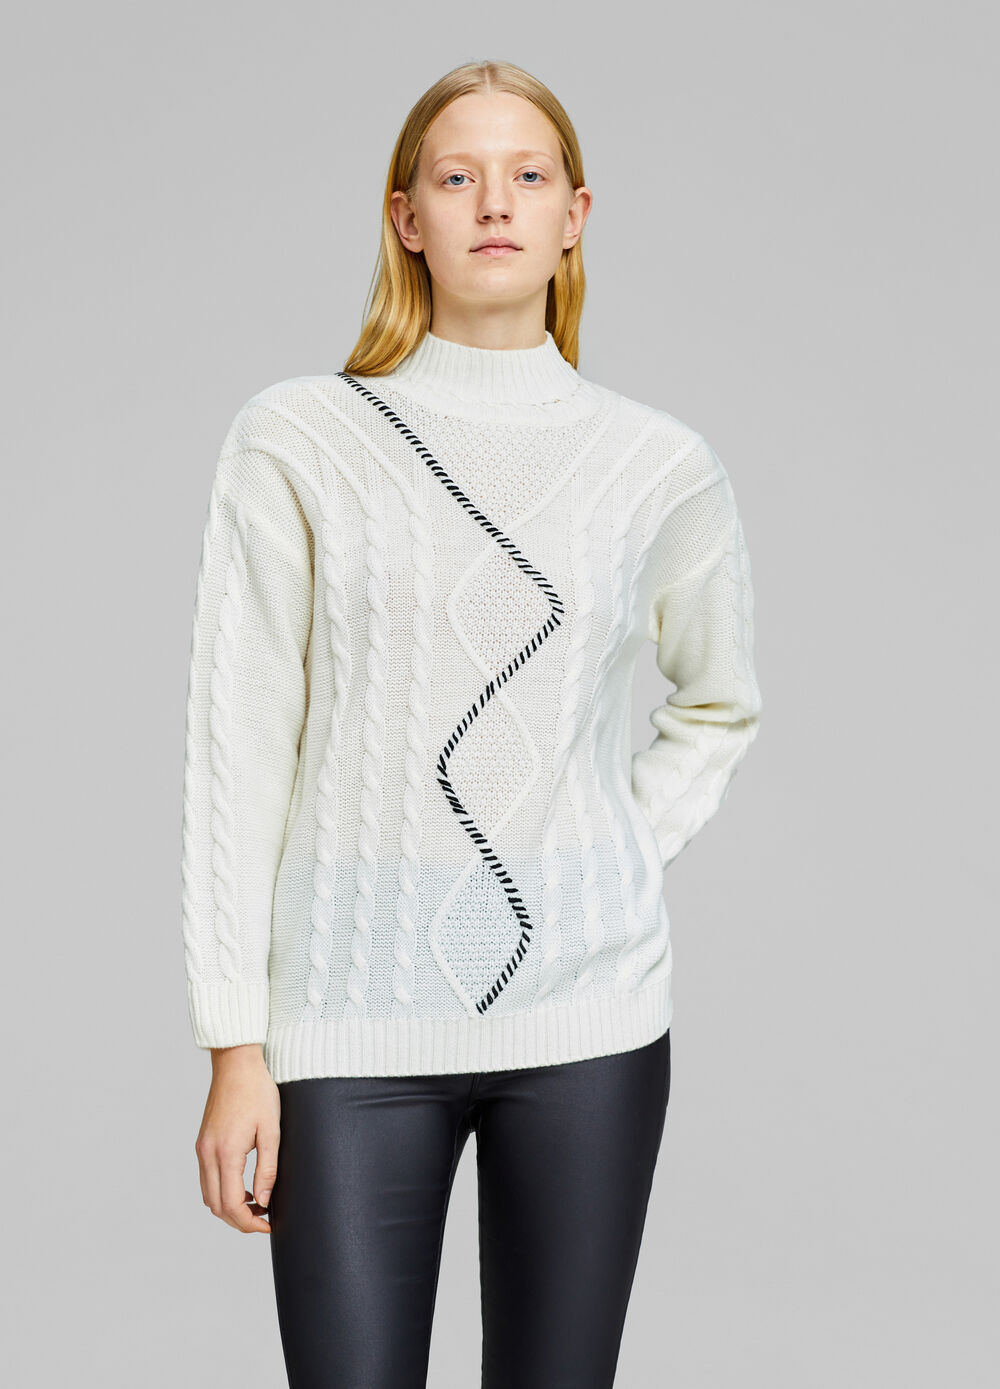 Pullover with high neck and braids